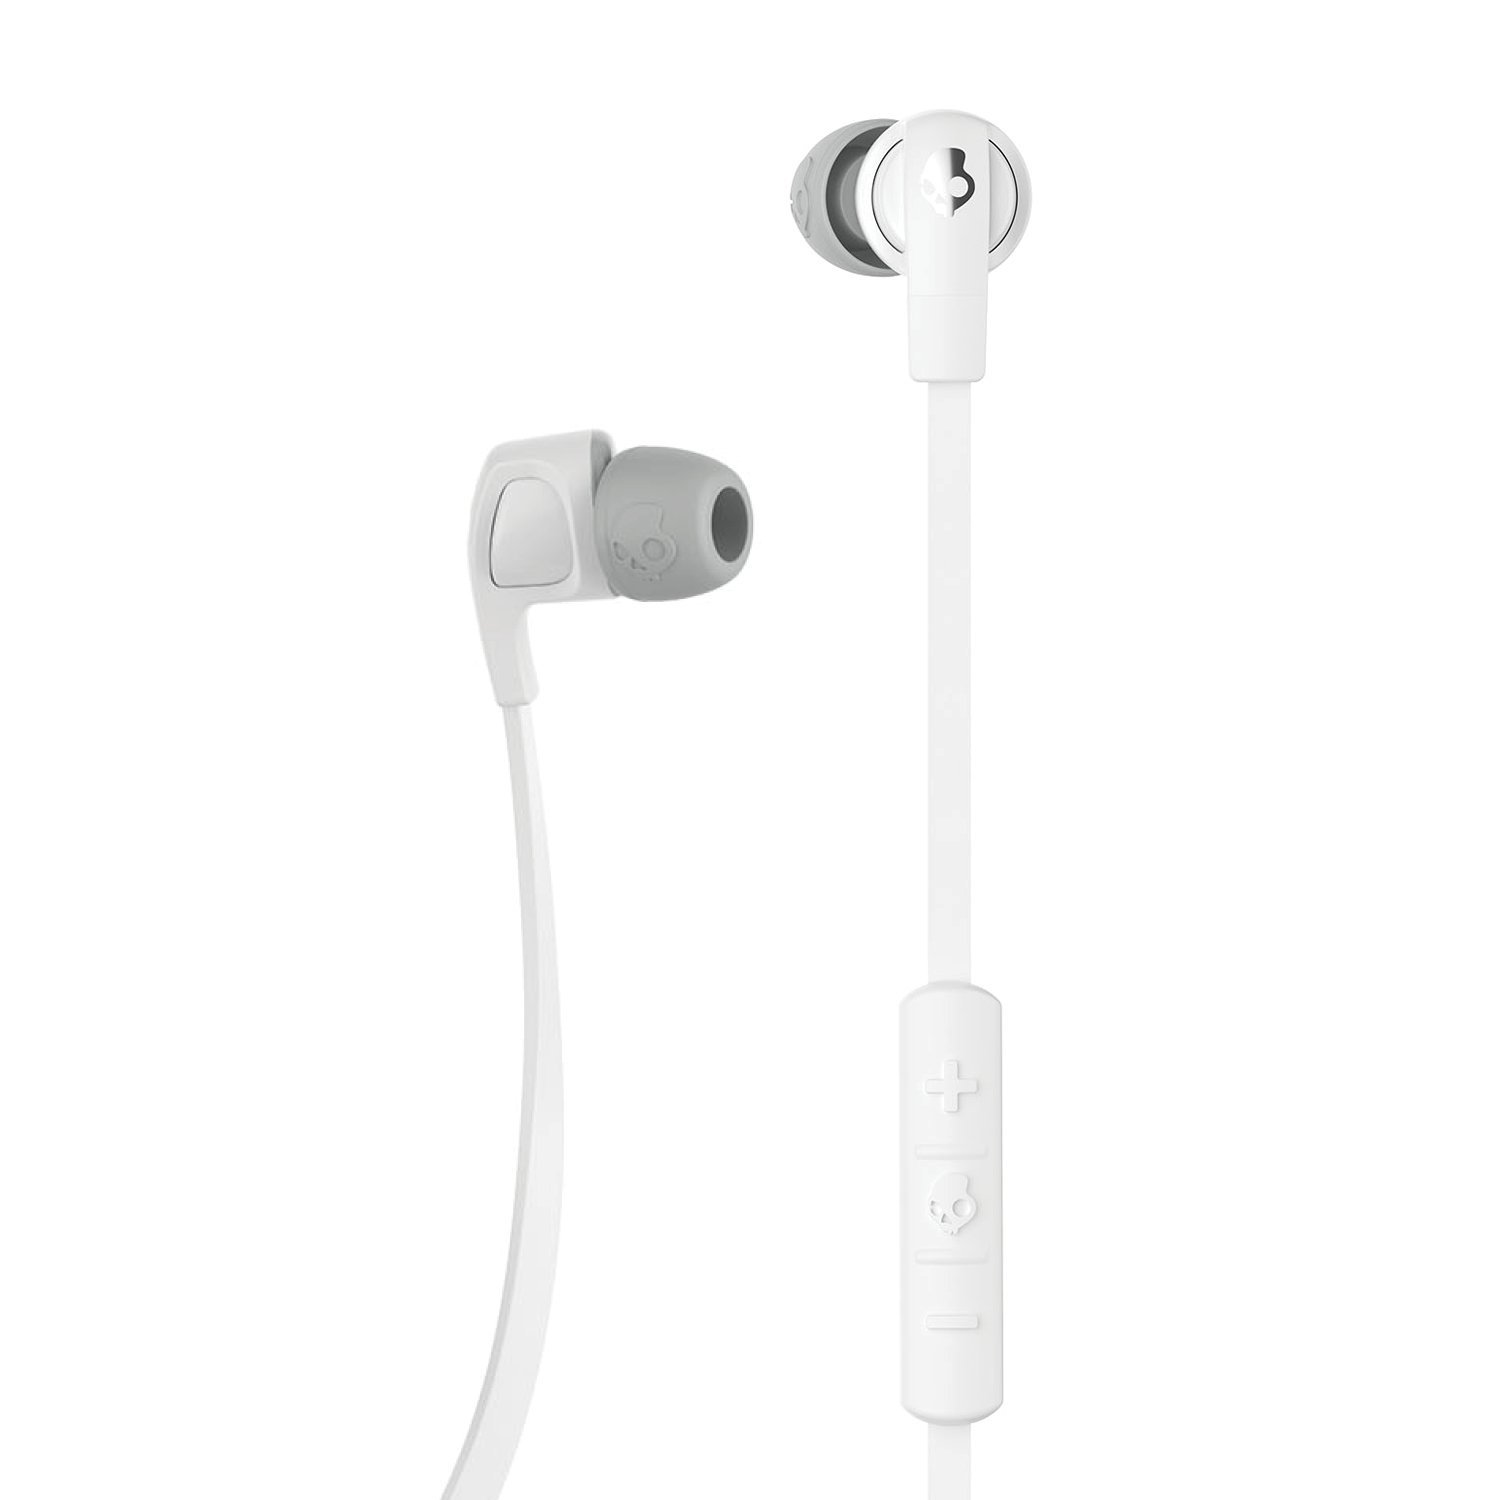 Skullcandy-Smokin-039-Buds-2-in-Ear-Bluetooth-Wireless-Earbuds-with-Microphone-New thumbnail 36